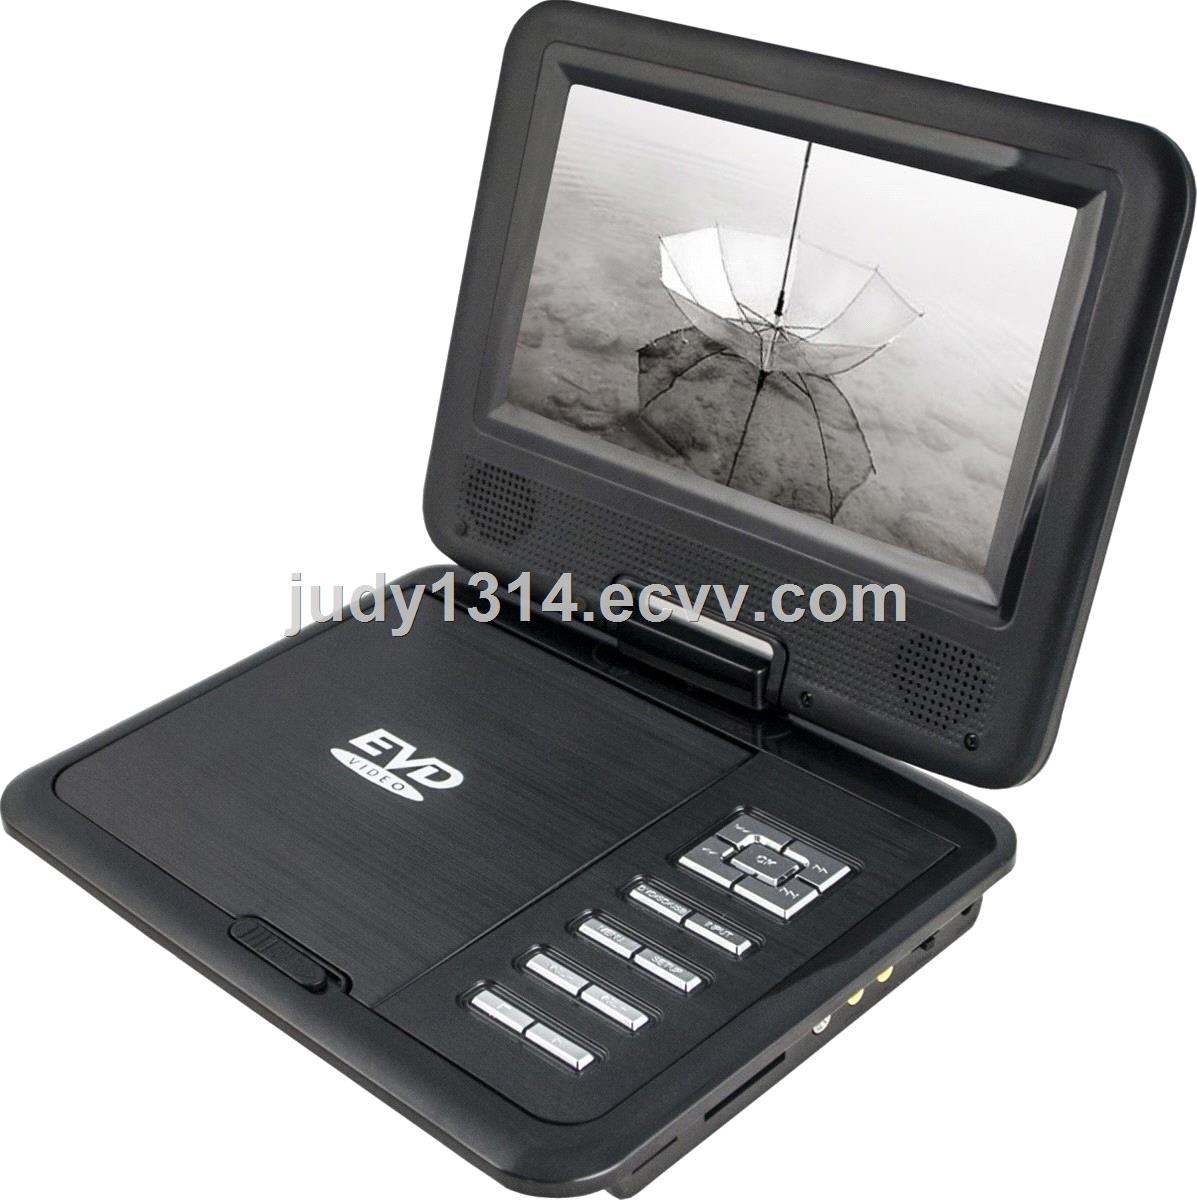 mini size walkman dvd player for studing english. Black Bedroom Furniture Sets. Home Design Ideas